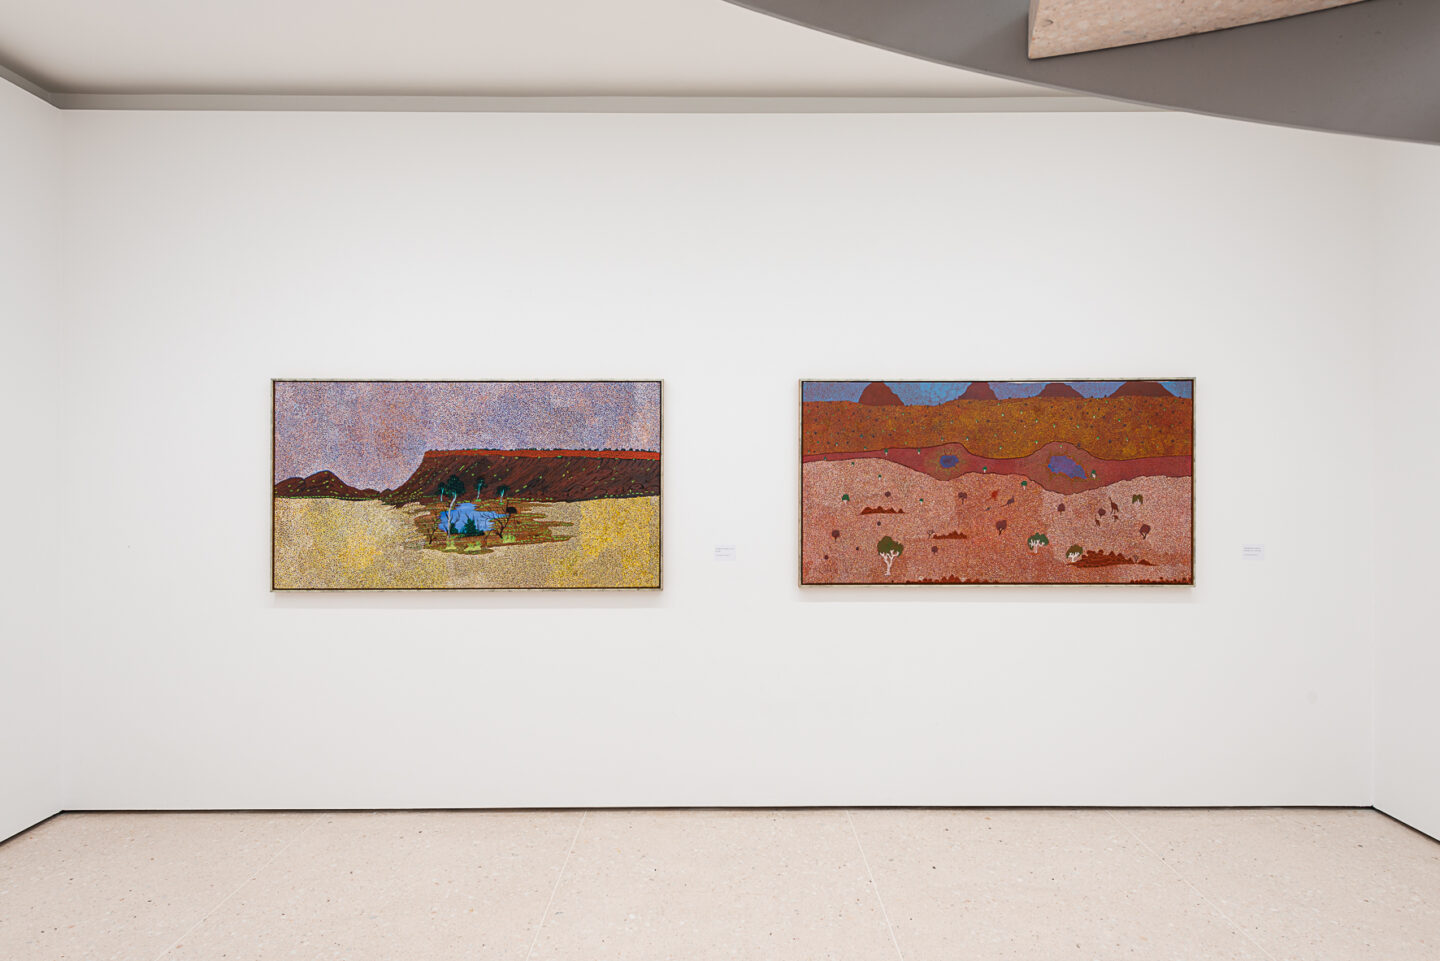 Exhibition View Groupshow «My Mothers Country; view on Angeline Luck Apetyarr, Kelo, 2006; Janie Nabanunga, Watering Holes in an Arid Region, 2004» at Kunsthaus Zug, Zug, 2019 / Photo: Jorit Aust / Courtesy: the artists, Collection Clement and Kunsthaus Zug